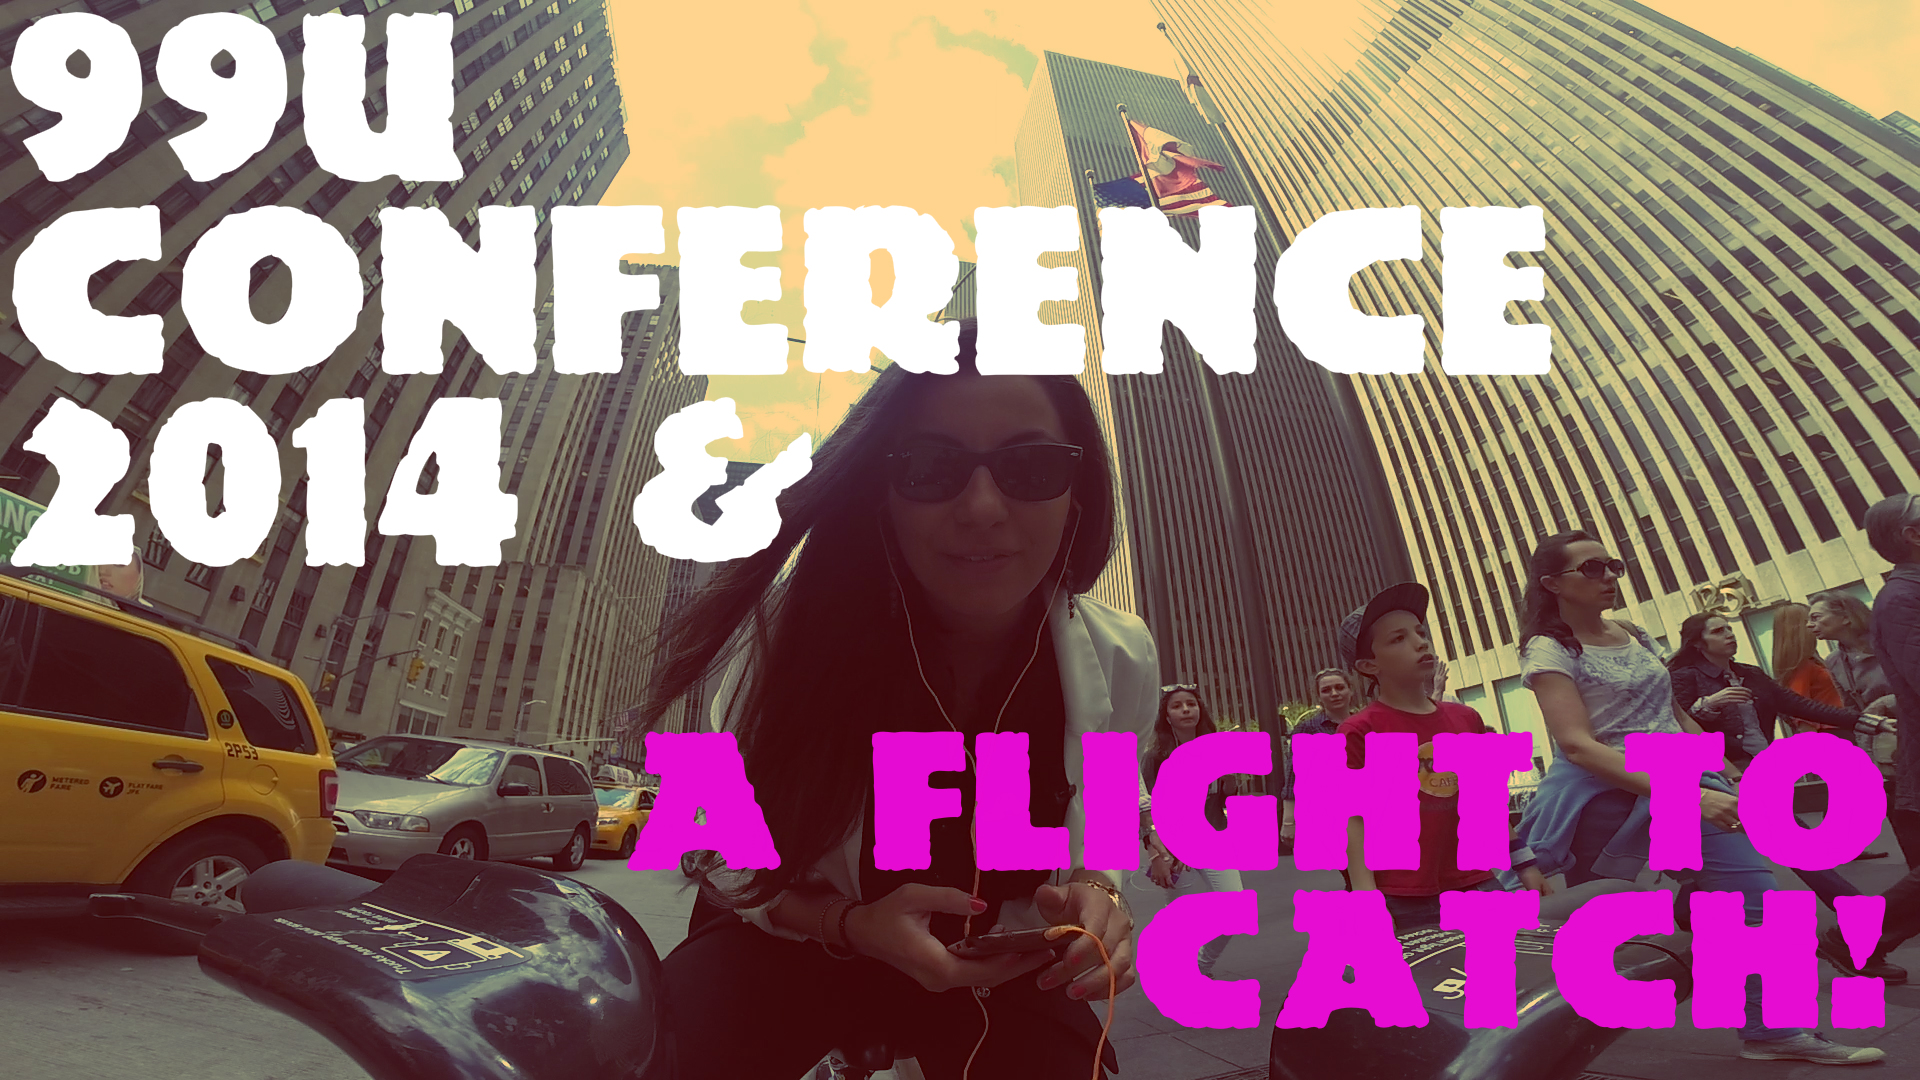 99U Conference and A Flight To Catch